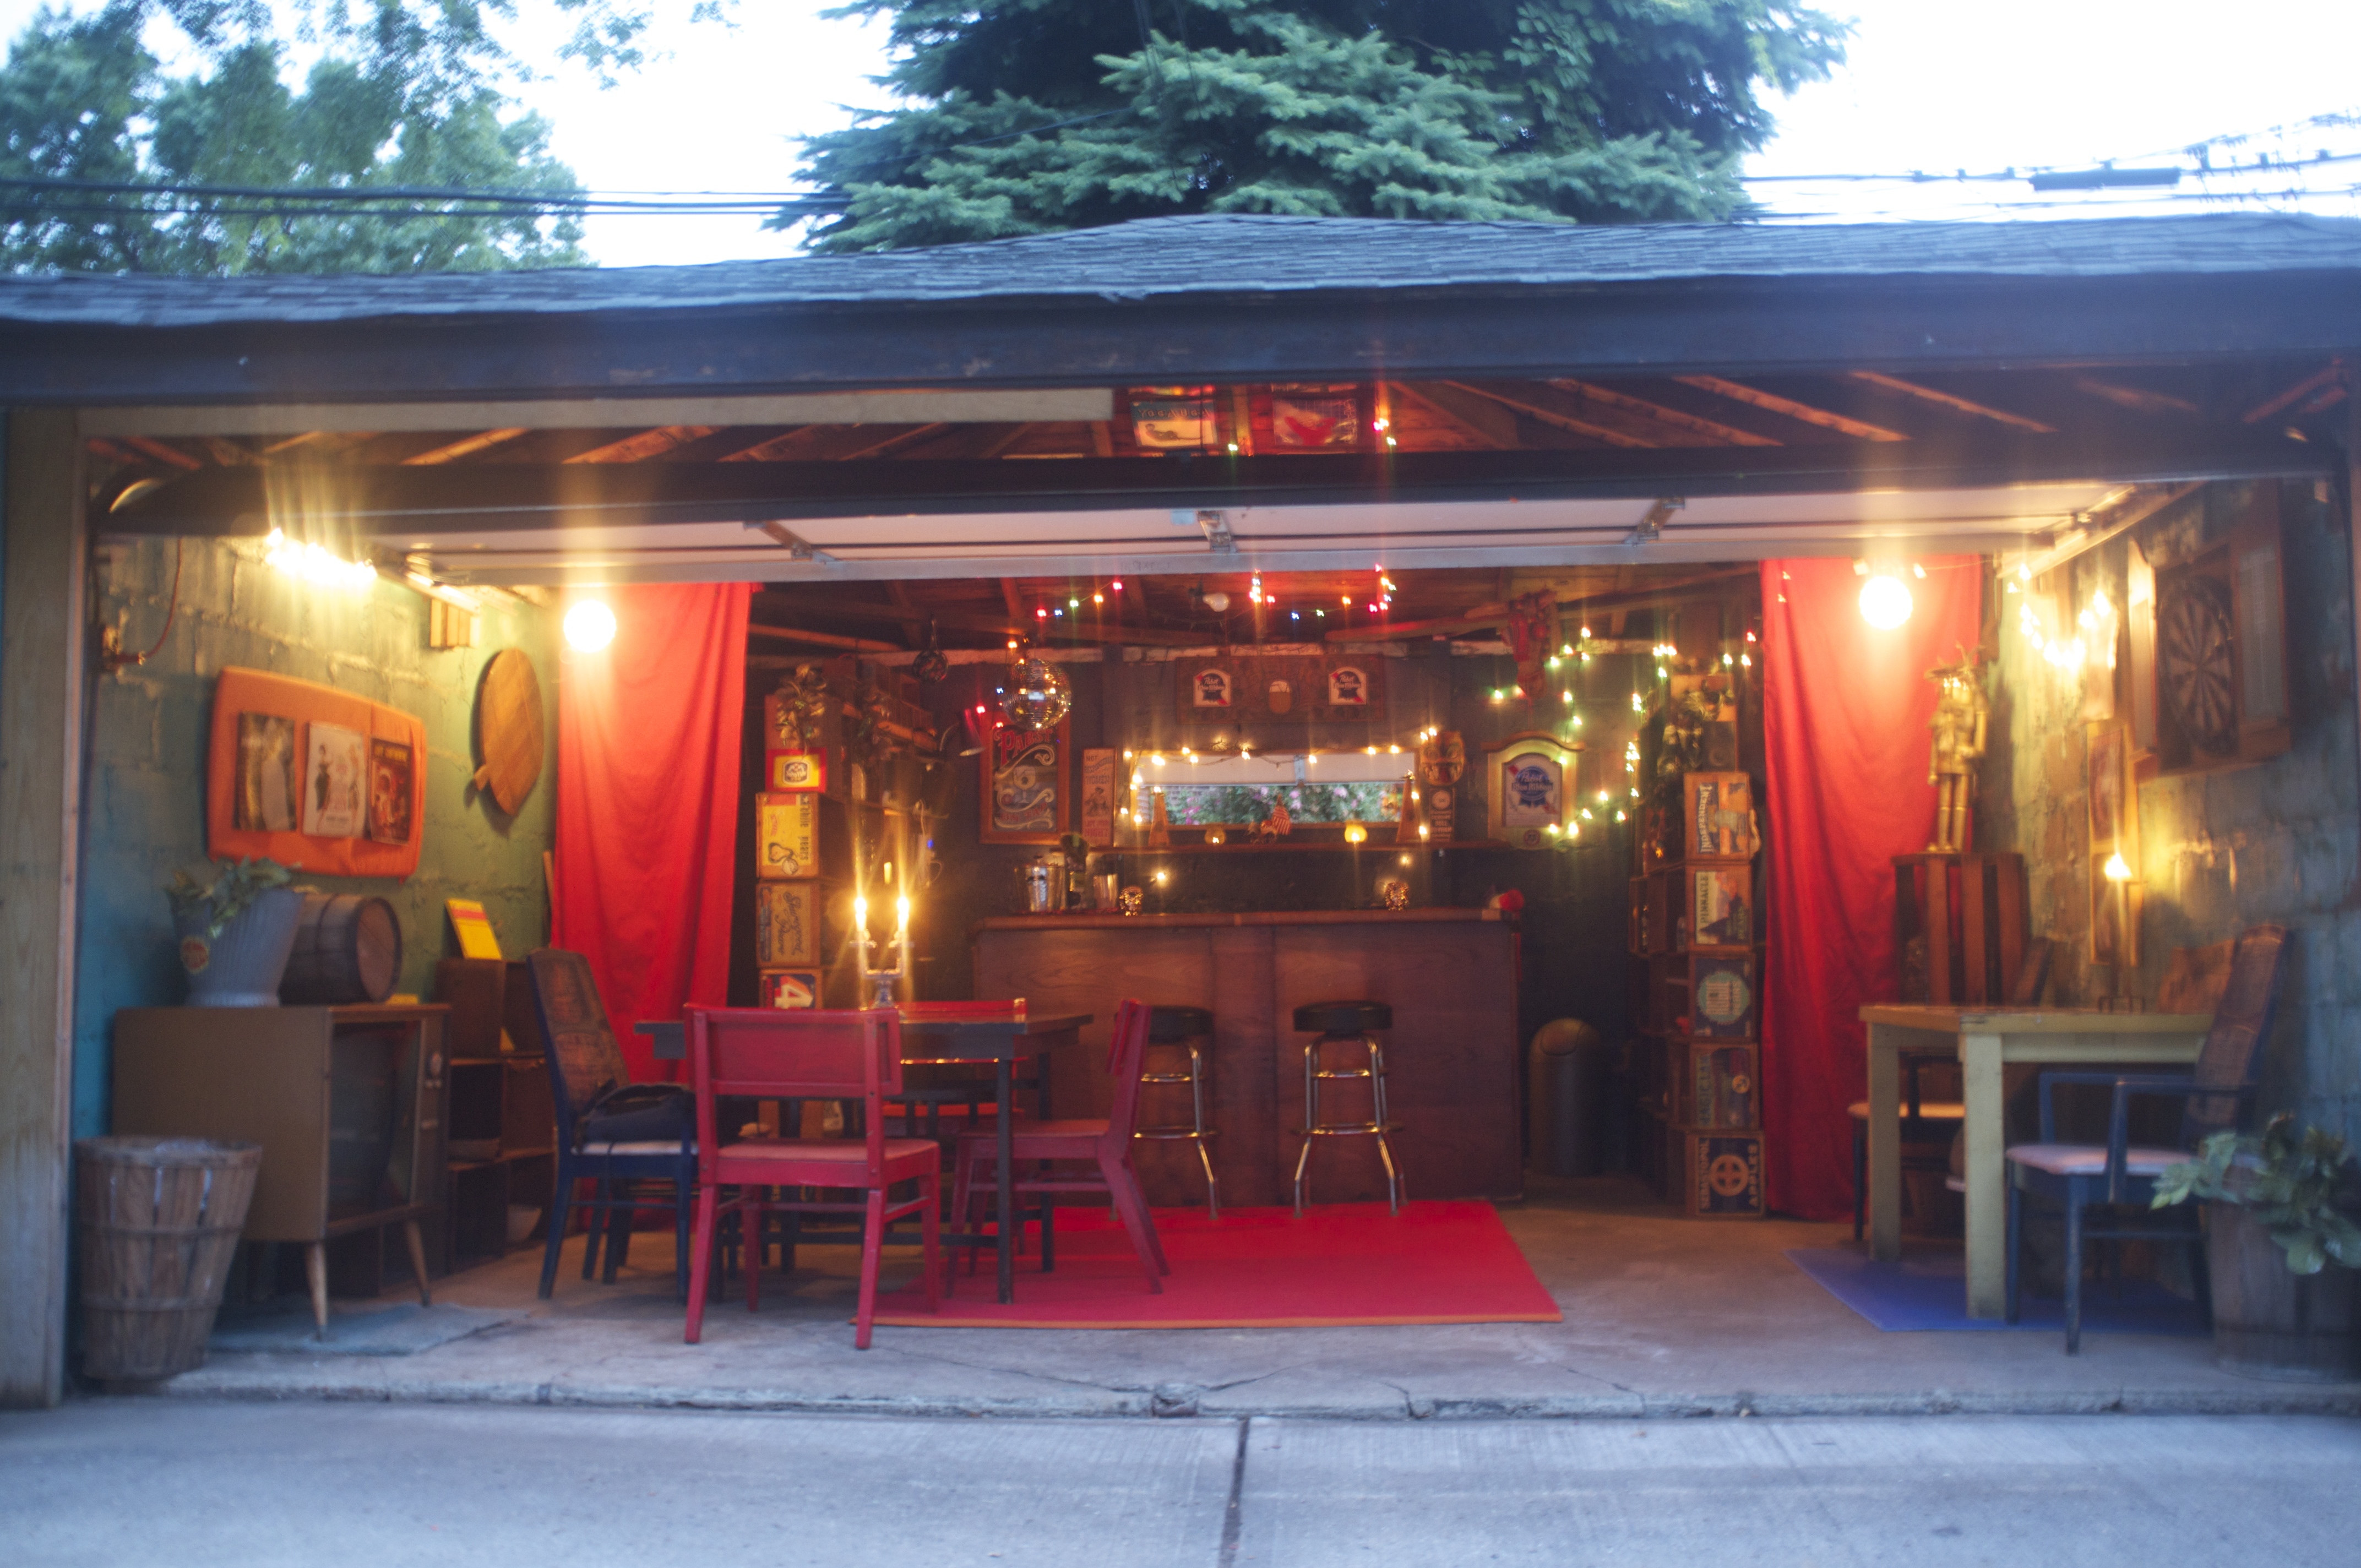 ideas for outside metal decor over garage - East Elmhurst Couple Turns Garage Into Funky Tiki Bar